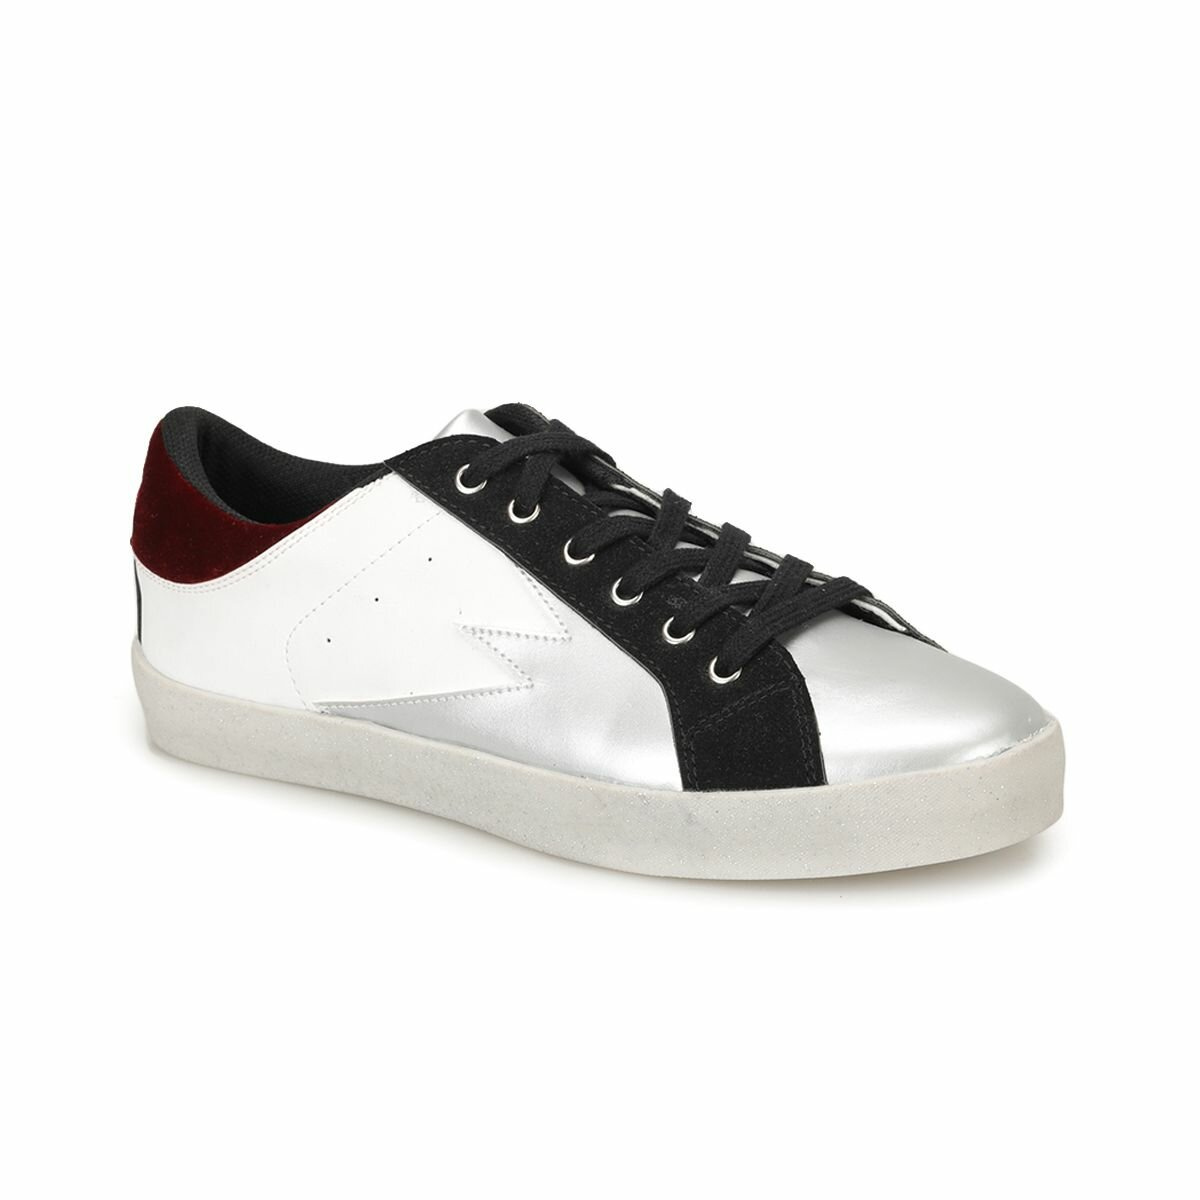 FLO 18K-120 White Women 'S Sneaker Shoes BUTIGO